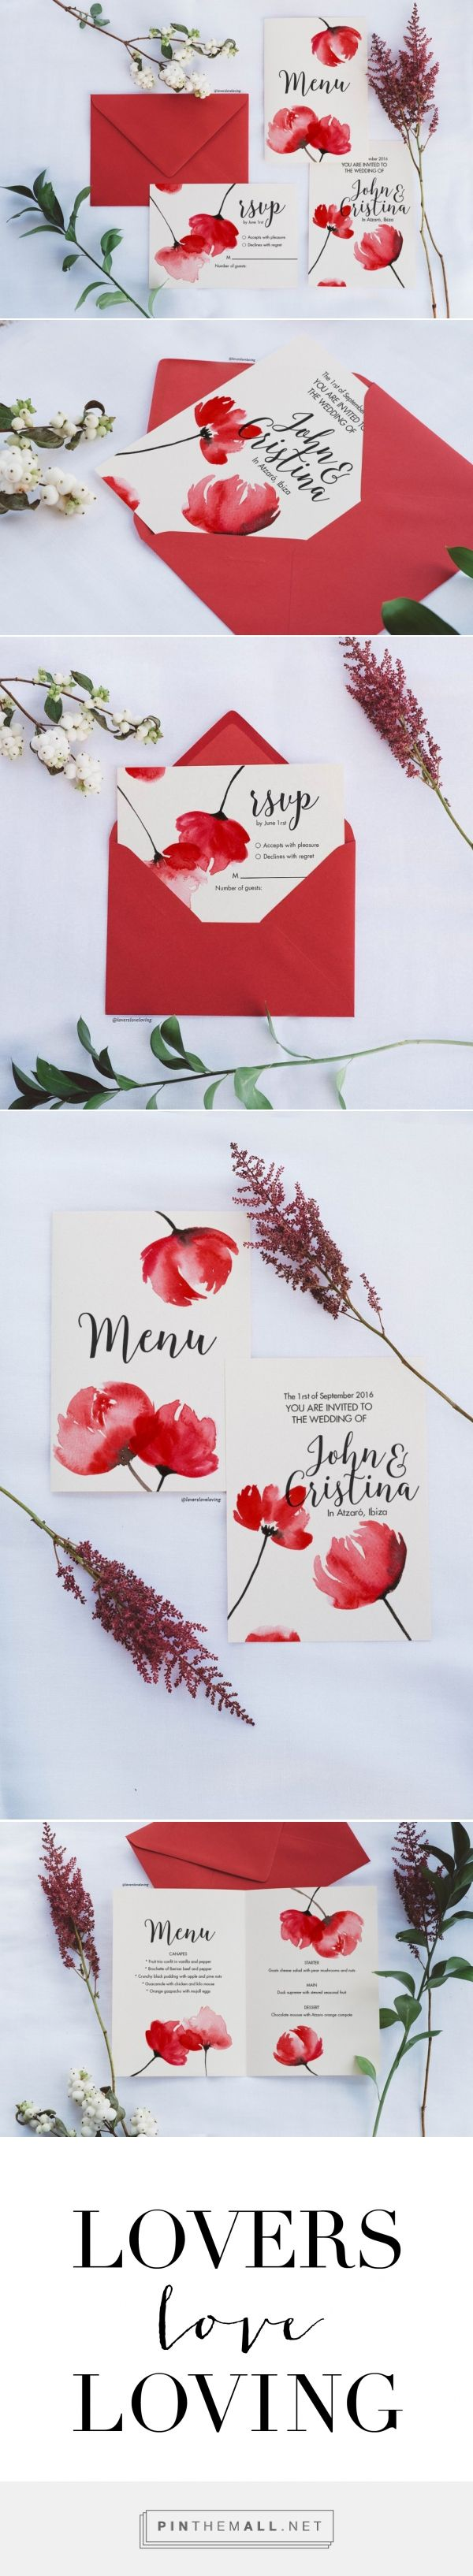 155 best Wedding Invitations images on Pinterest | Invitation cards ...